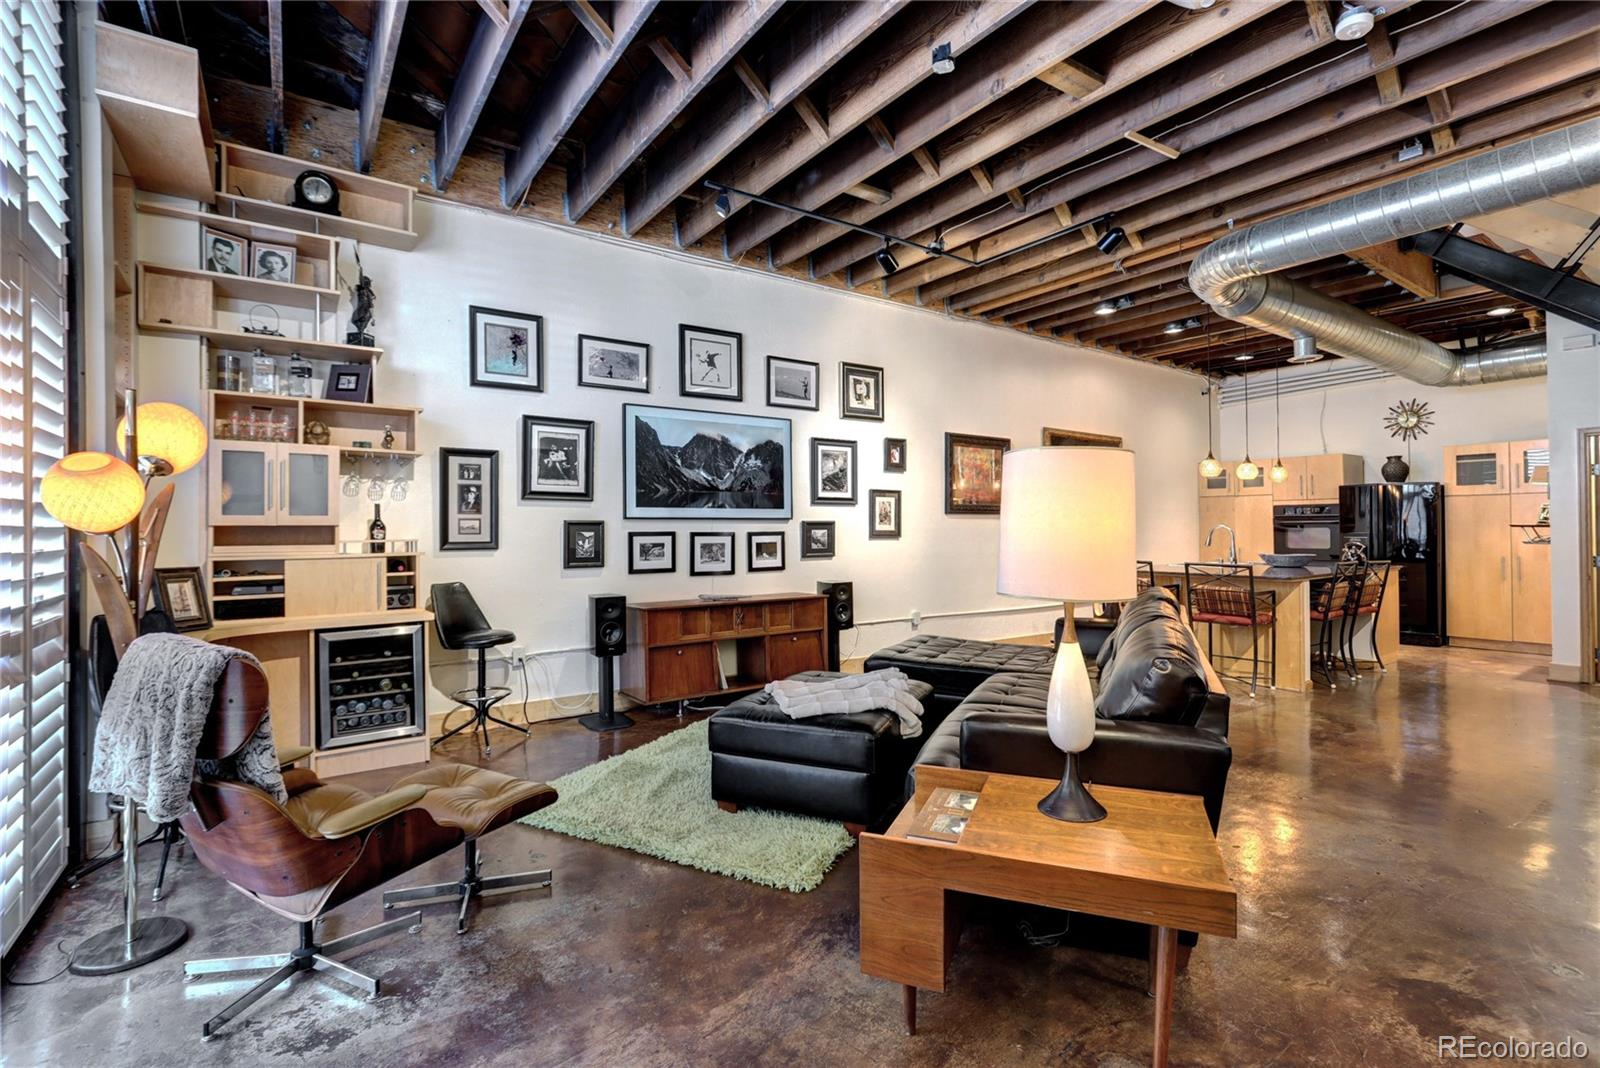 "Very unique, one-of-a-kind loft. In 2001, the Furniture Factory was converted to these spacious lofts/rowhomes. Open main floor concept, with custom built-in bar, cabinets and desk/office space and stained concrete floor. Huge kitchen island, perfect for entertaining. The 2nd floor has master bedroom, 2nd bedroom and remodeled, full bathroom. Original wood floors and 11' rafter ceilings on main and 2nd floors. The master bedroom has custom, built-in library, with hidden closet, if more space is needed. The 3rd floor has the 3rd bedroom, with laminate floor, along with a large, rooftop patio, with mountain views...an amazing outdoor space! All interior doors are 8' tall and solid wood. 6"" wood baseboard throughout. Recently painted interior. Custom plantation blinds. Close to RiNo, Coors Field, LoDo, dining, bars, historic art building and minutes to Pepsi Center and Mile High. One secure garage parking space #4, with 8'x10' storage above it. A second secure off-street, reserved parking space (#4). Zoned mixed use, so you can work and live here!"